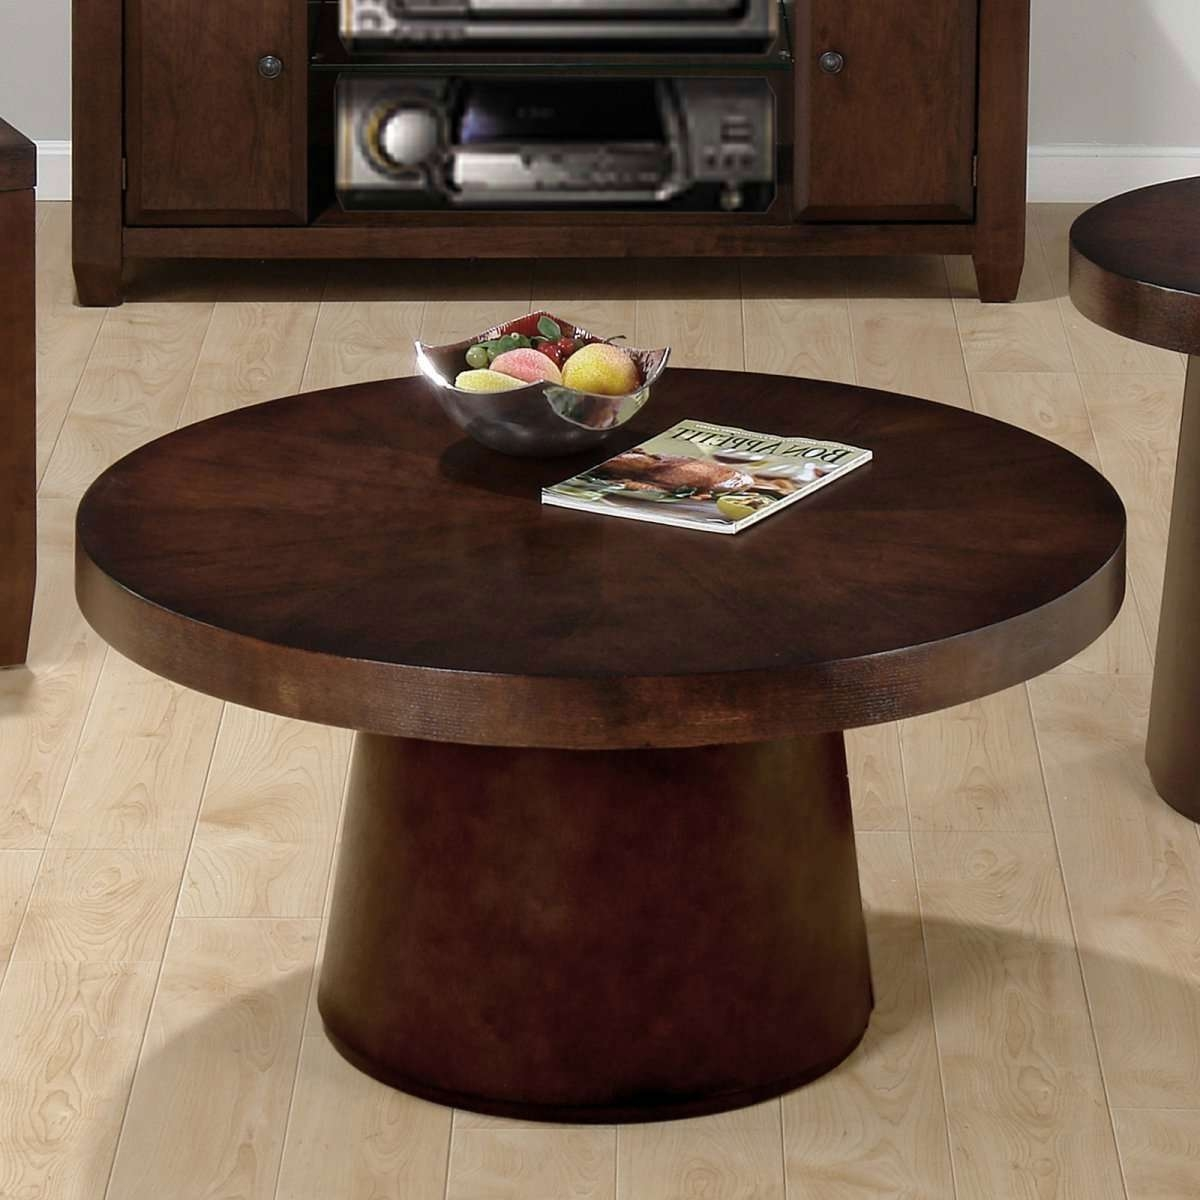 10 Best Small Round Coffee Tables For Round Coffee Tables Round With Most Recent Small Round Coffee Tables (Gallery 2 of 20)